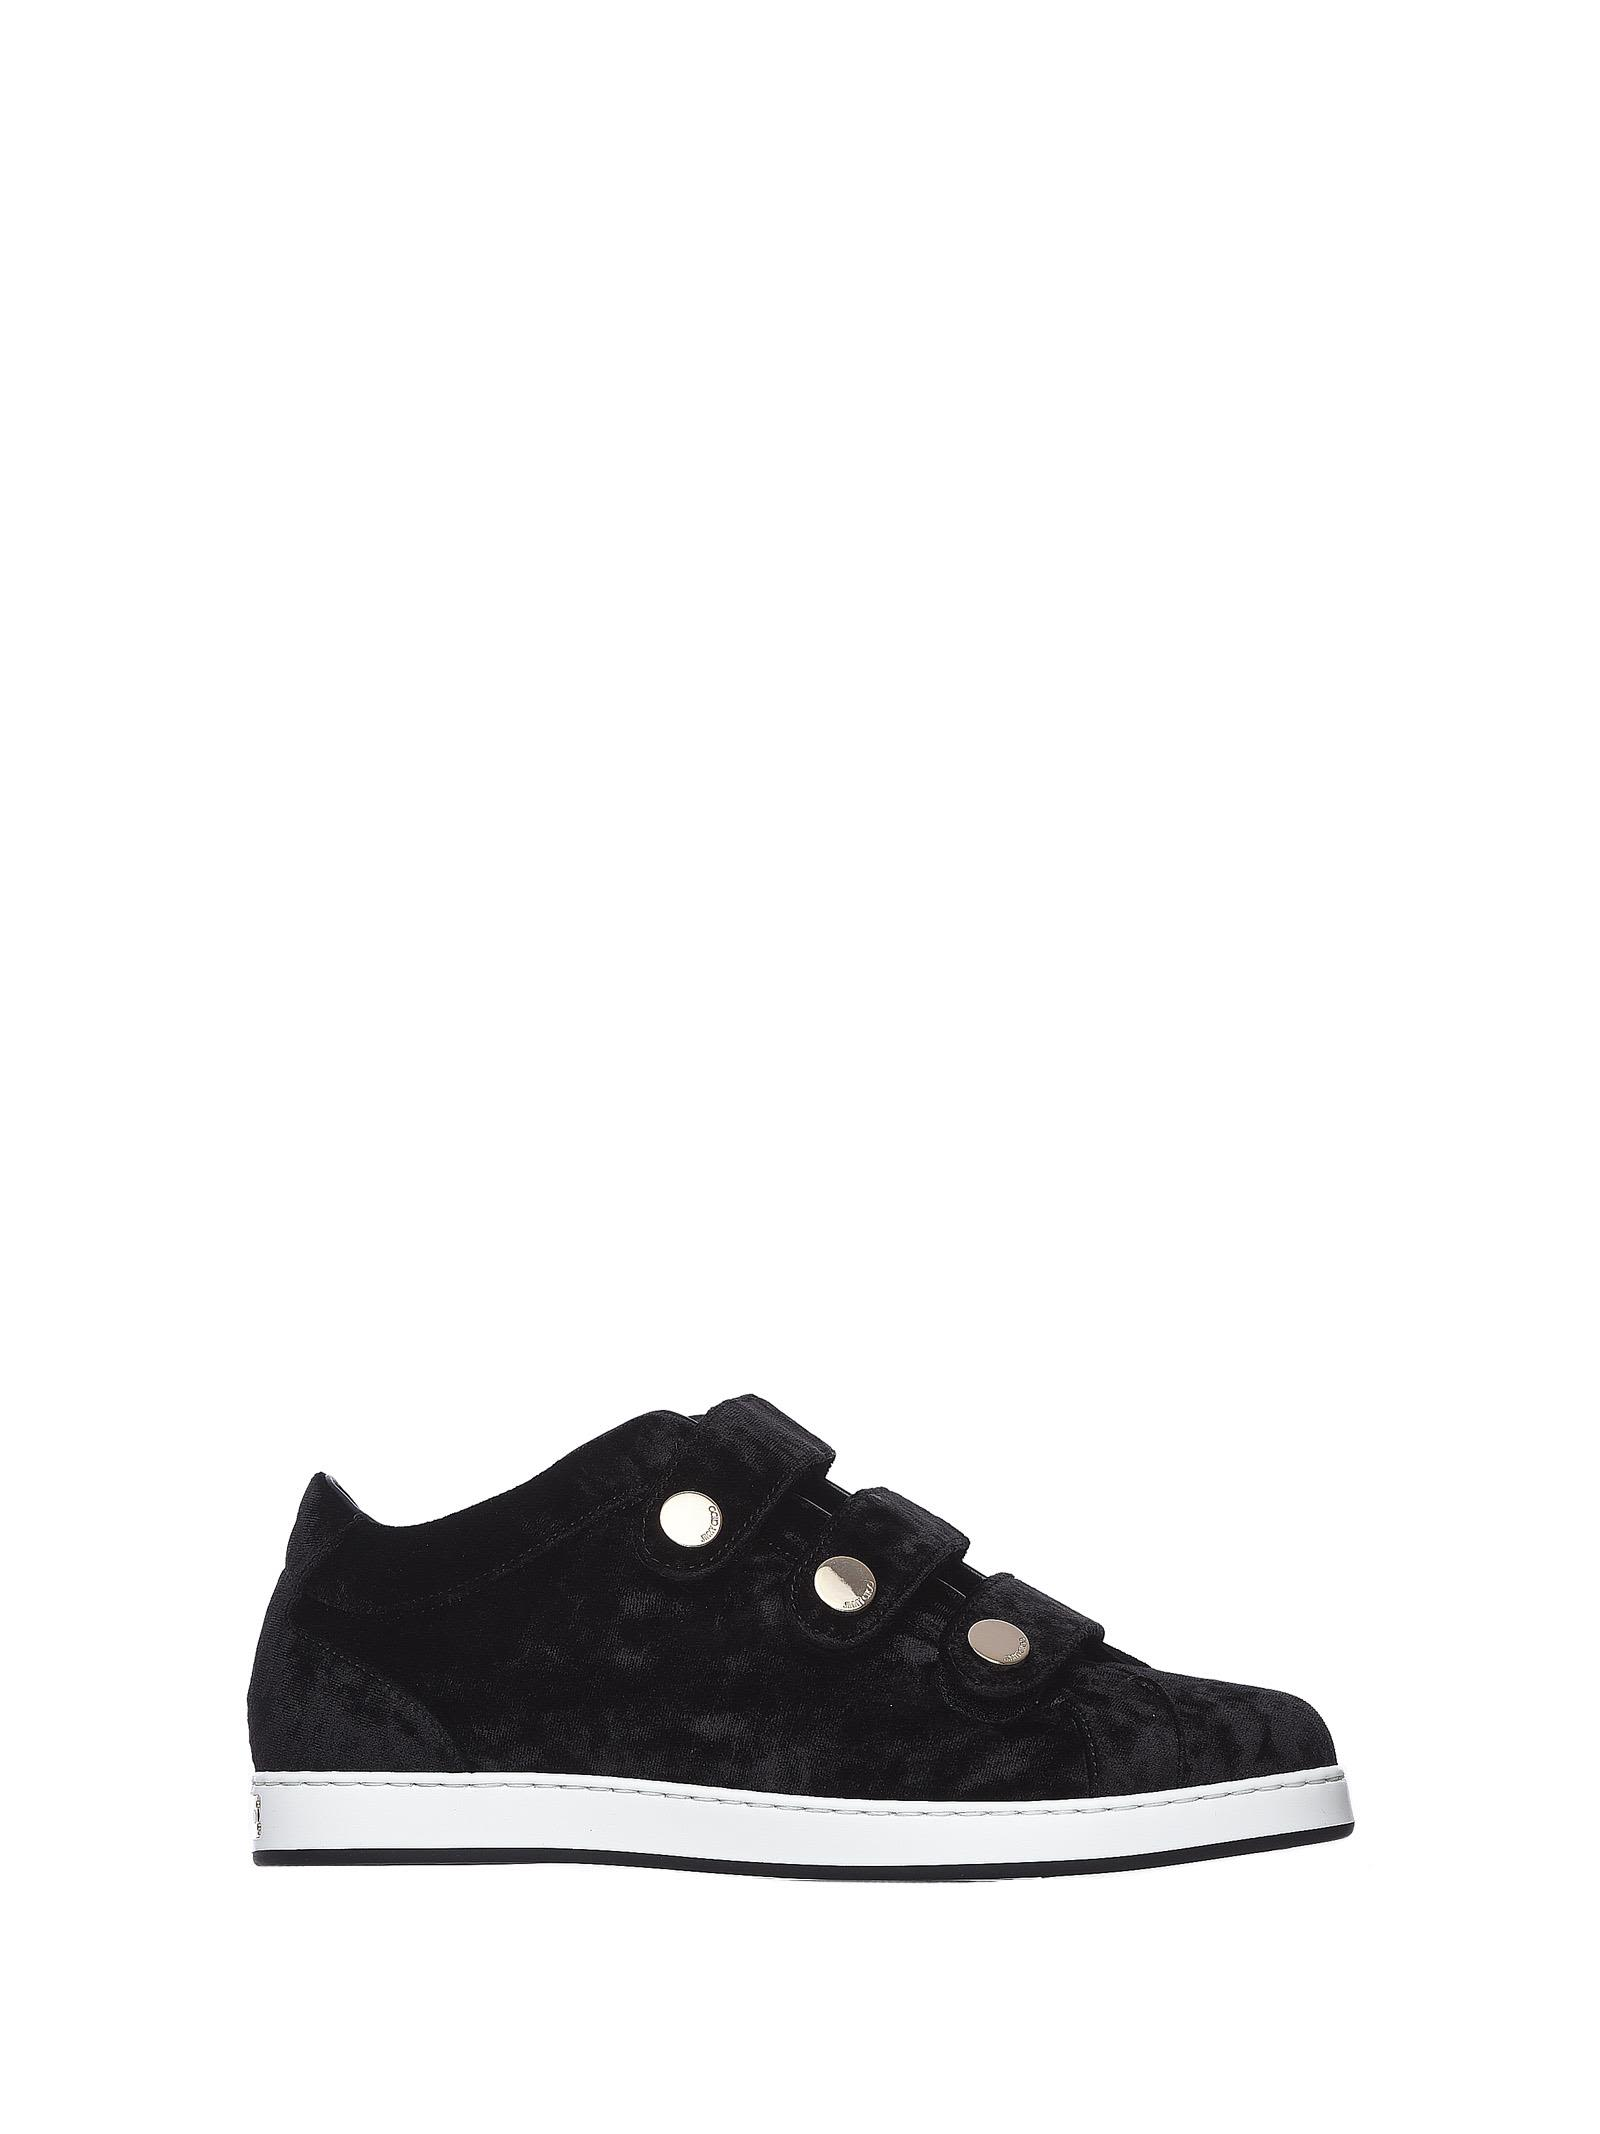 Jimmy Choo Ny Sneakers Trainer Black